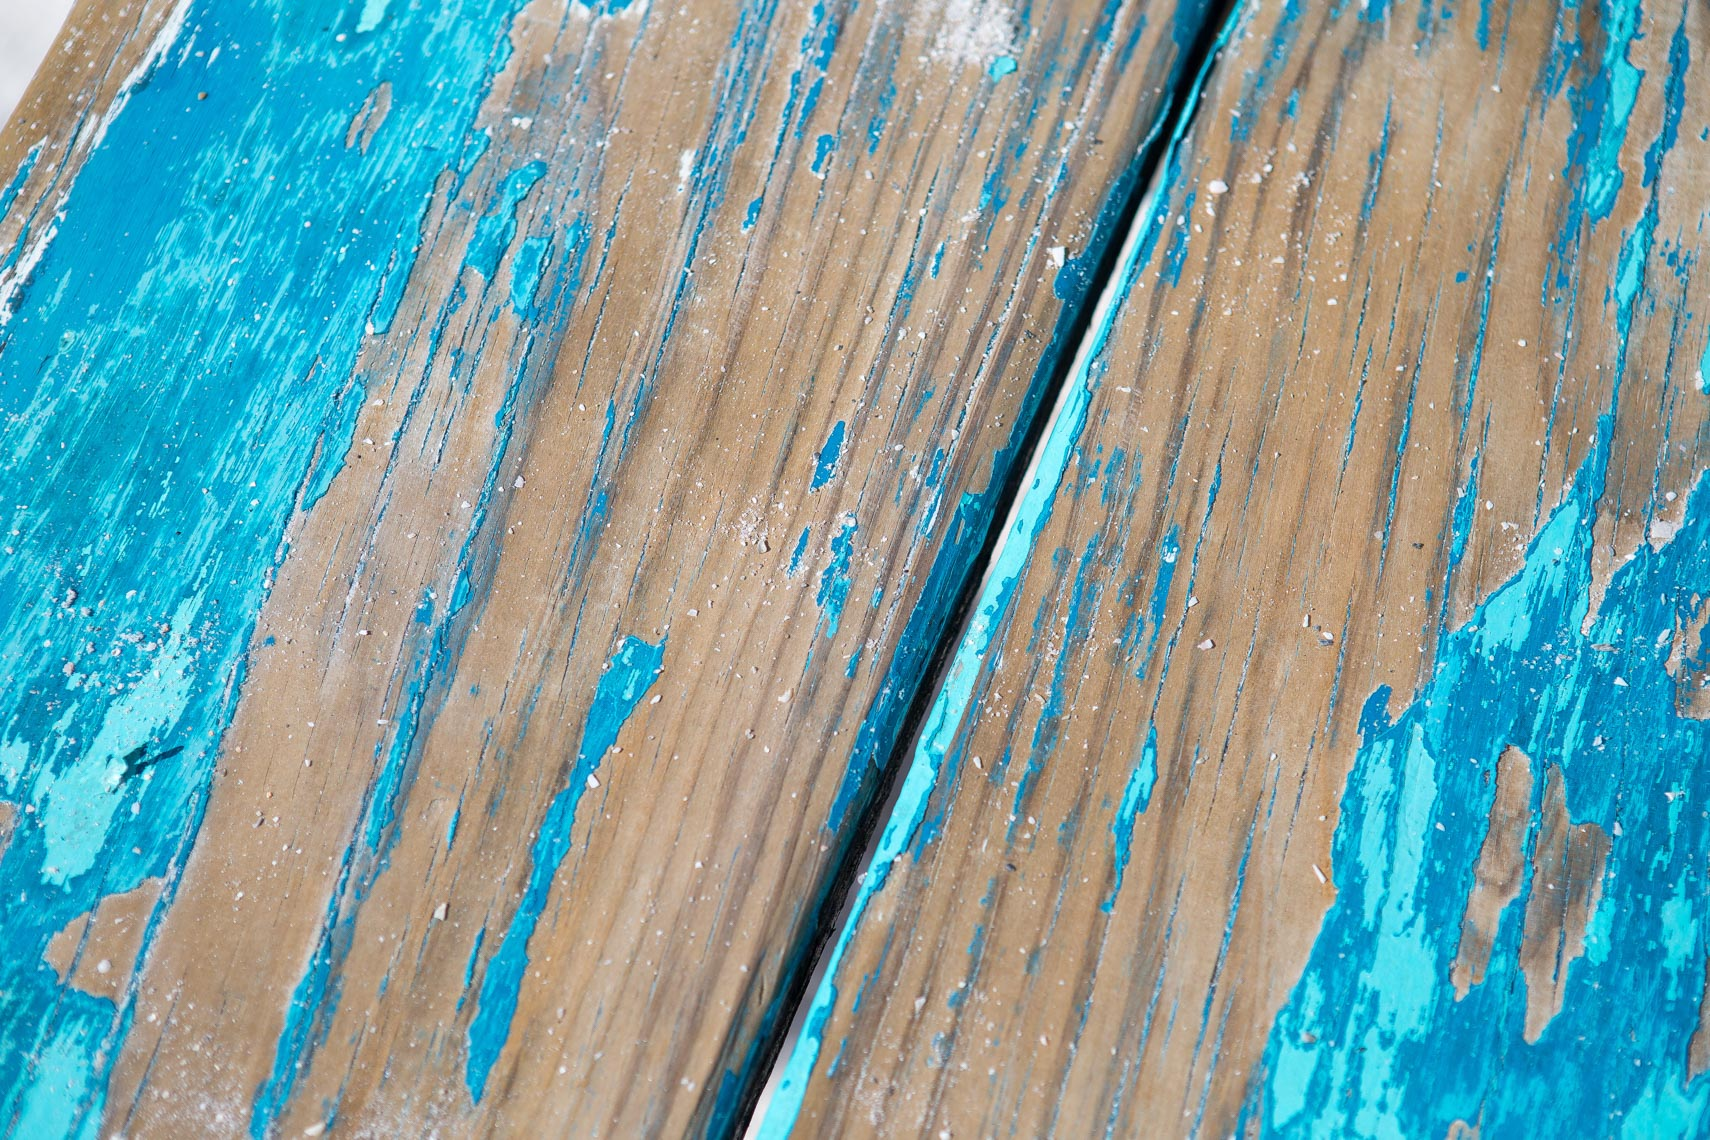 worn wooden painted plank, shot by Steven P. Widoff, editorial, lifestyle and advertising commercial photographer in Tampa, Florida.